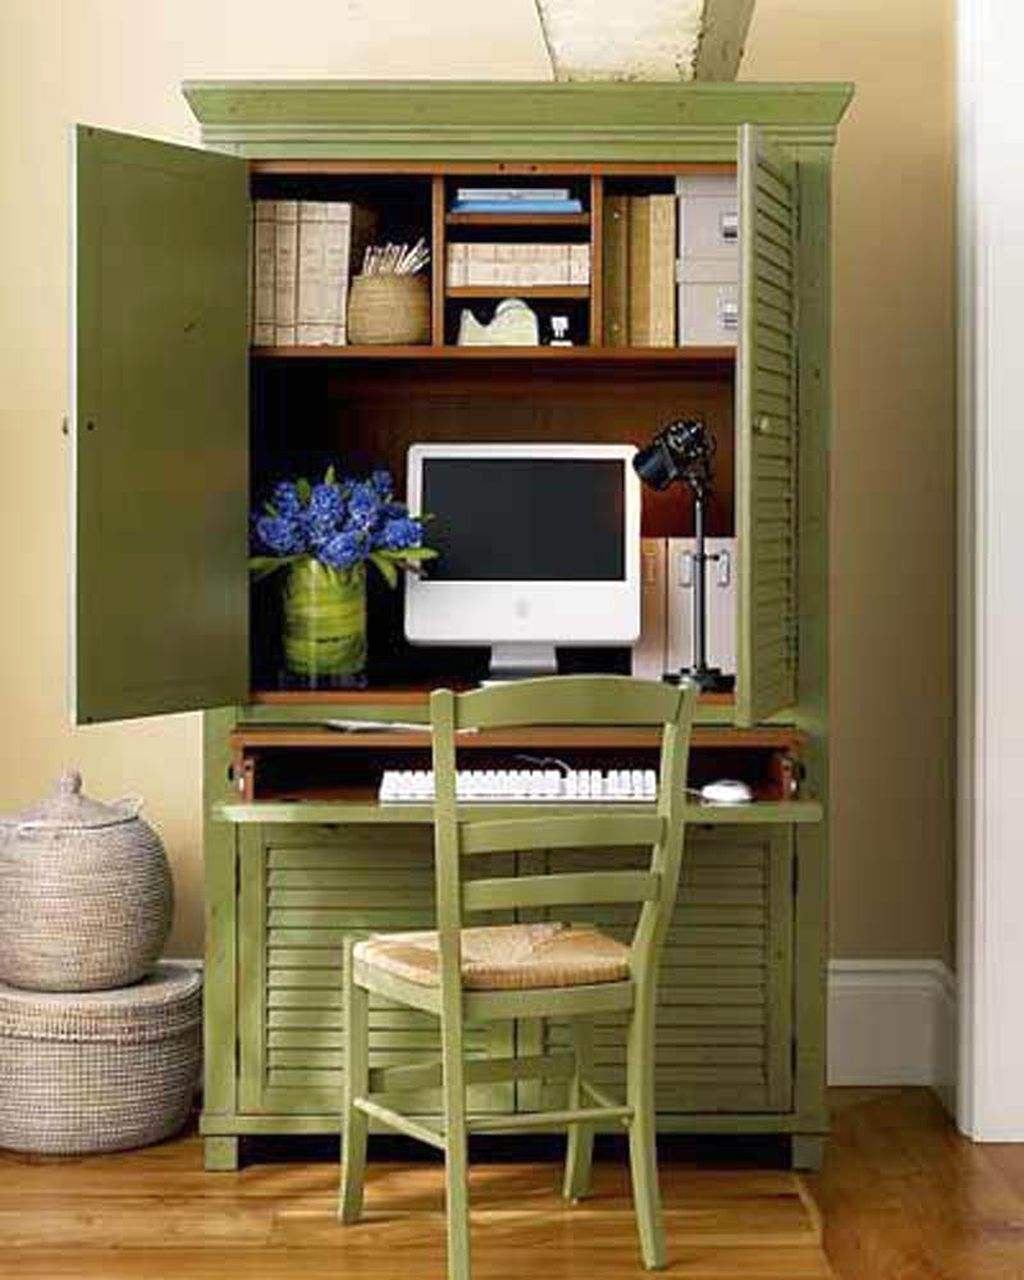 Green cupboard home office design ideas for small spaces for Home offices ideas